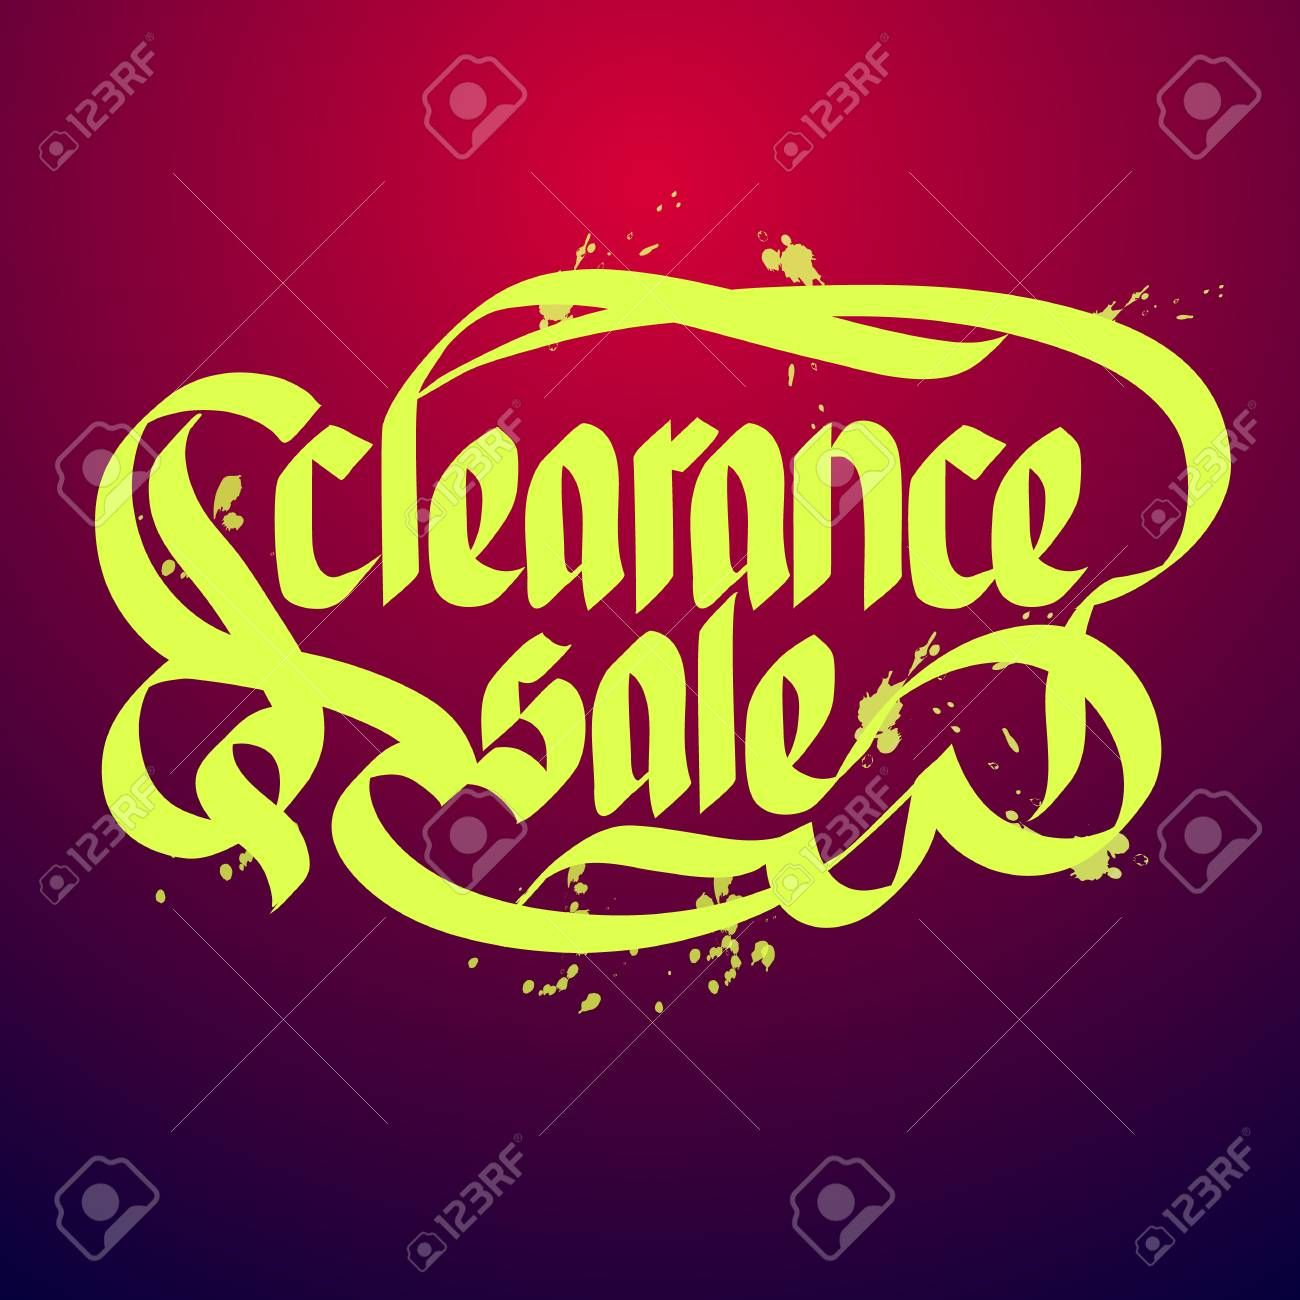 Clearance Sale Typographical Concept On Gradient Background Flat Vector Illustration Sponsored Typograp Vector Illustration Neon Signs Gradient Background